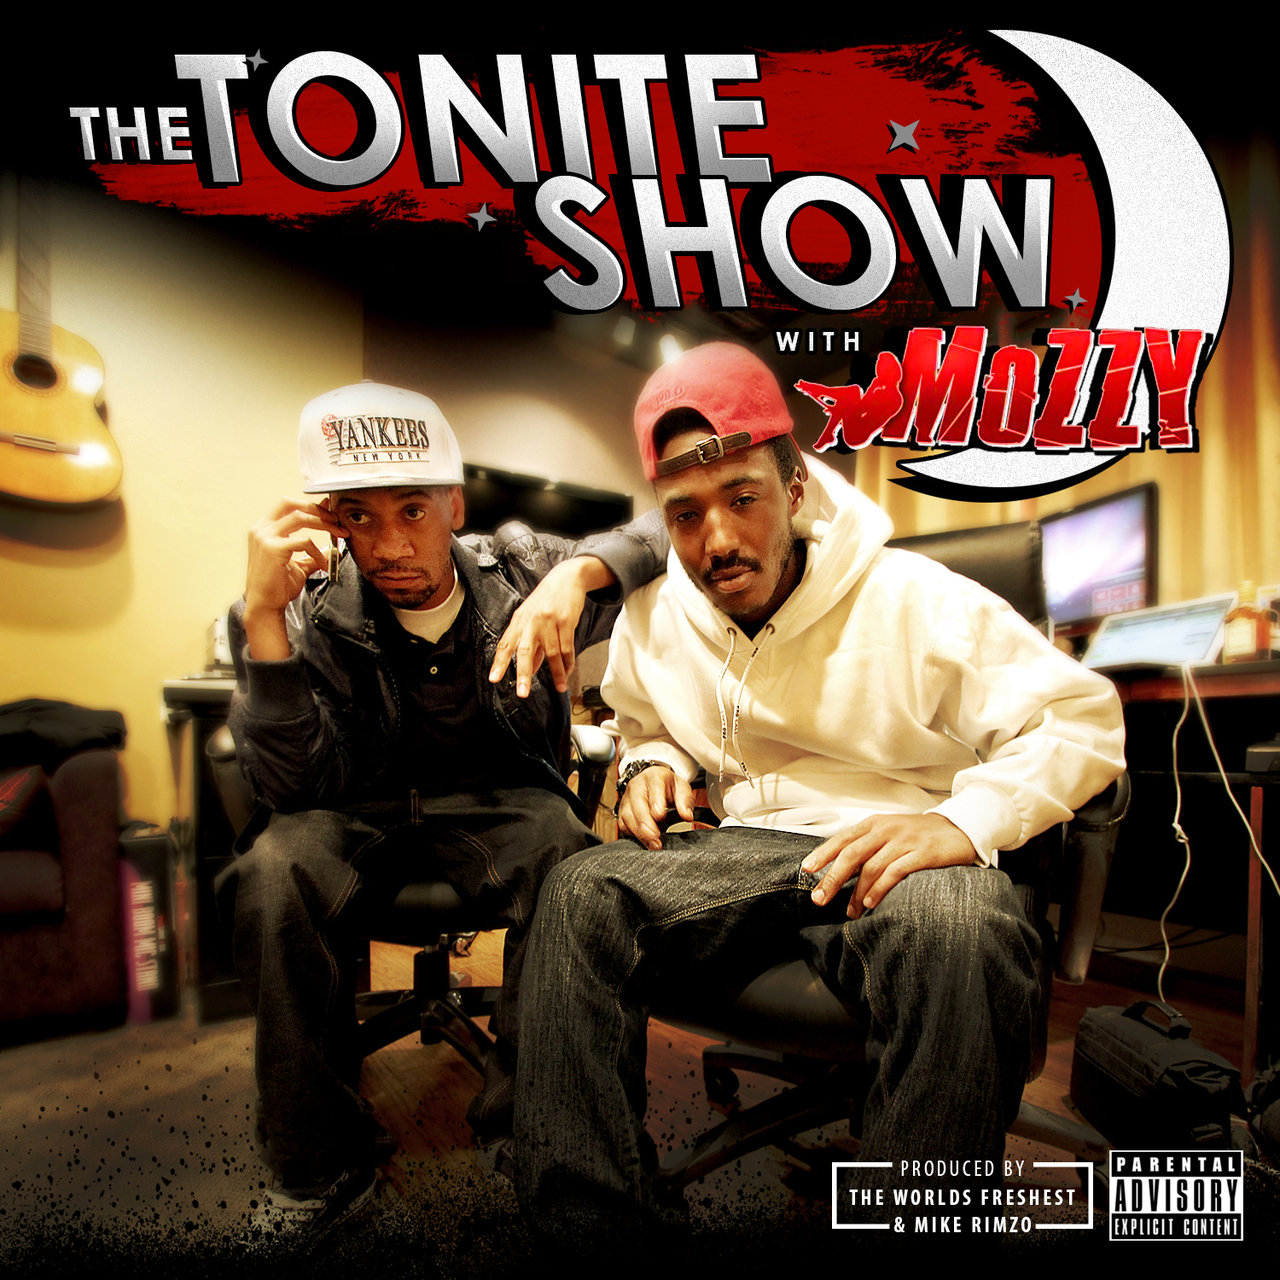 The Tonite Show with Mozzy